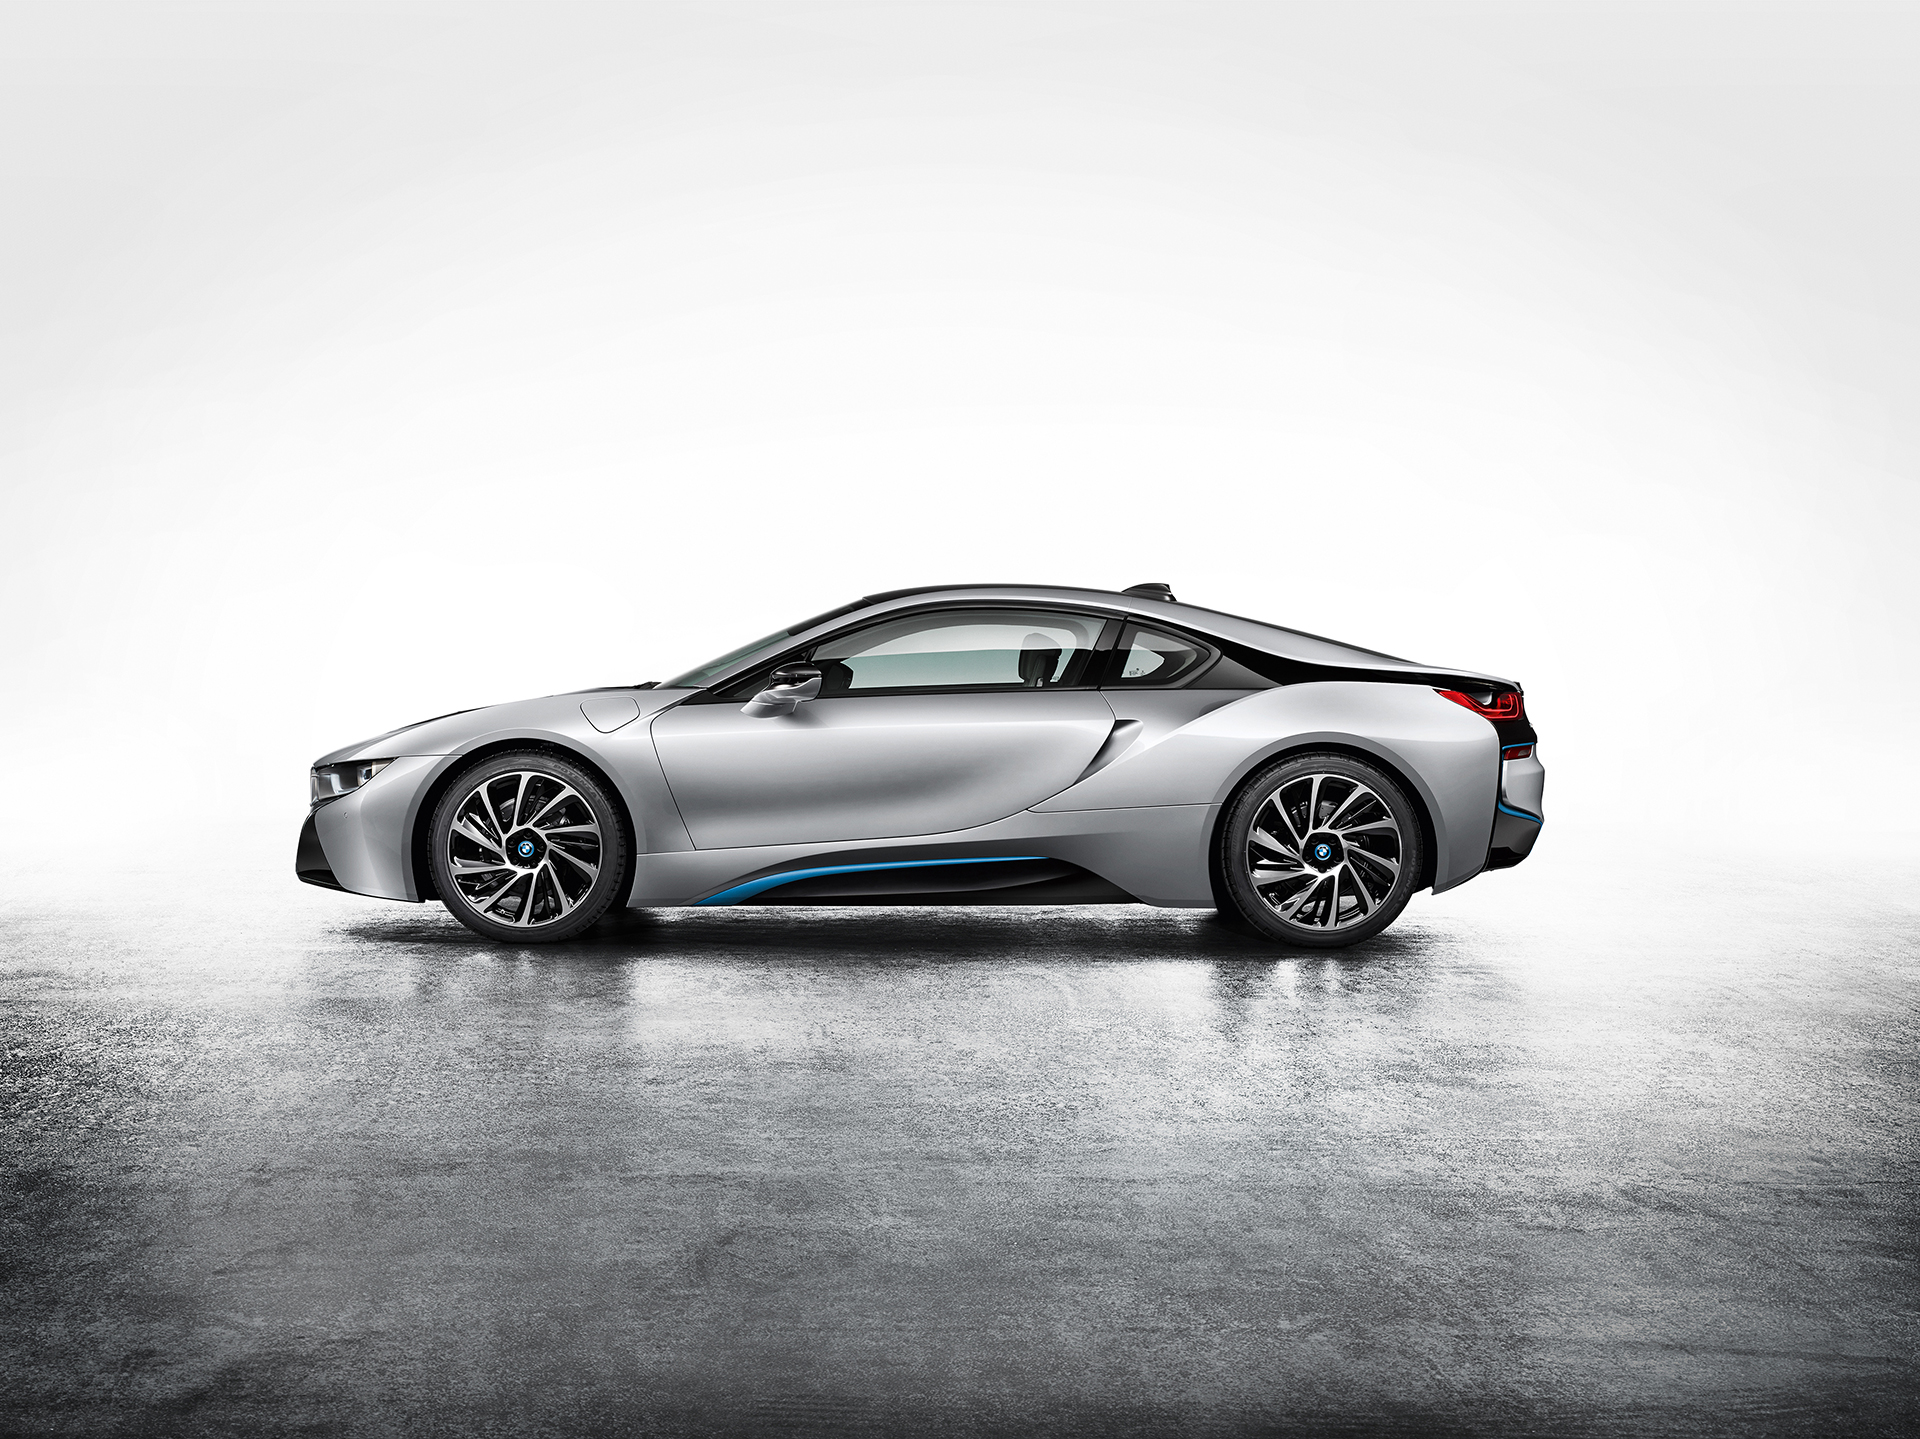 BMW i8 - side-face / profil